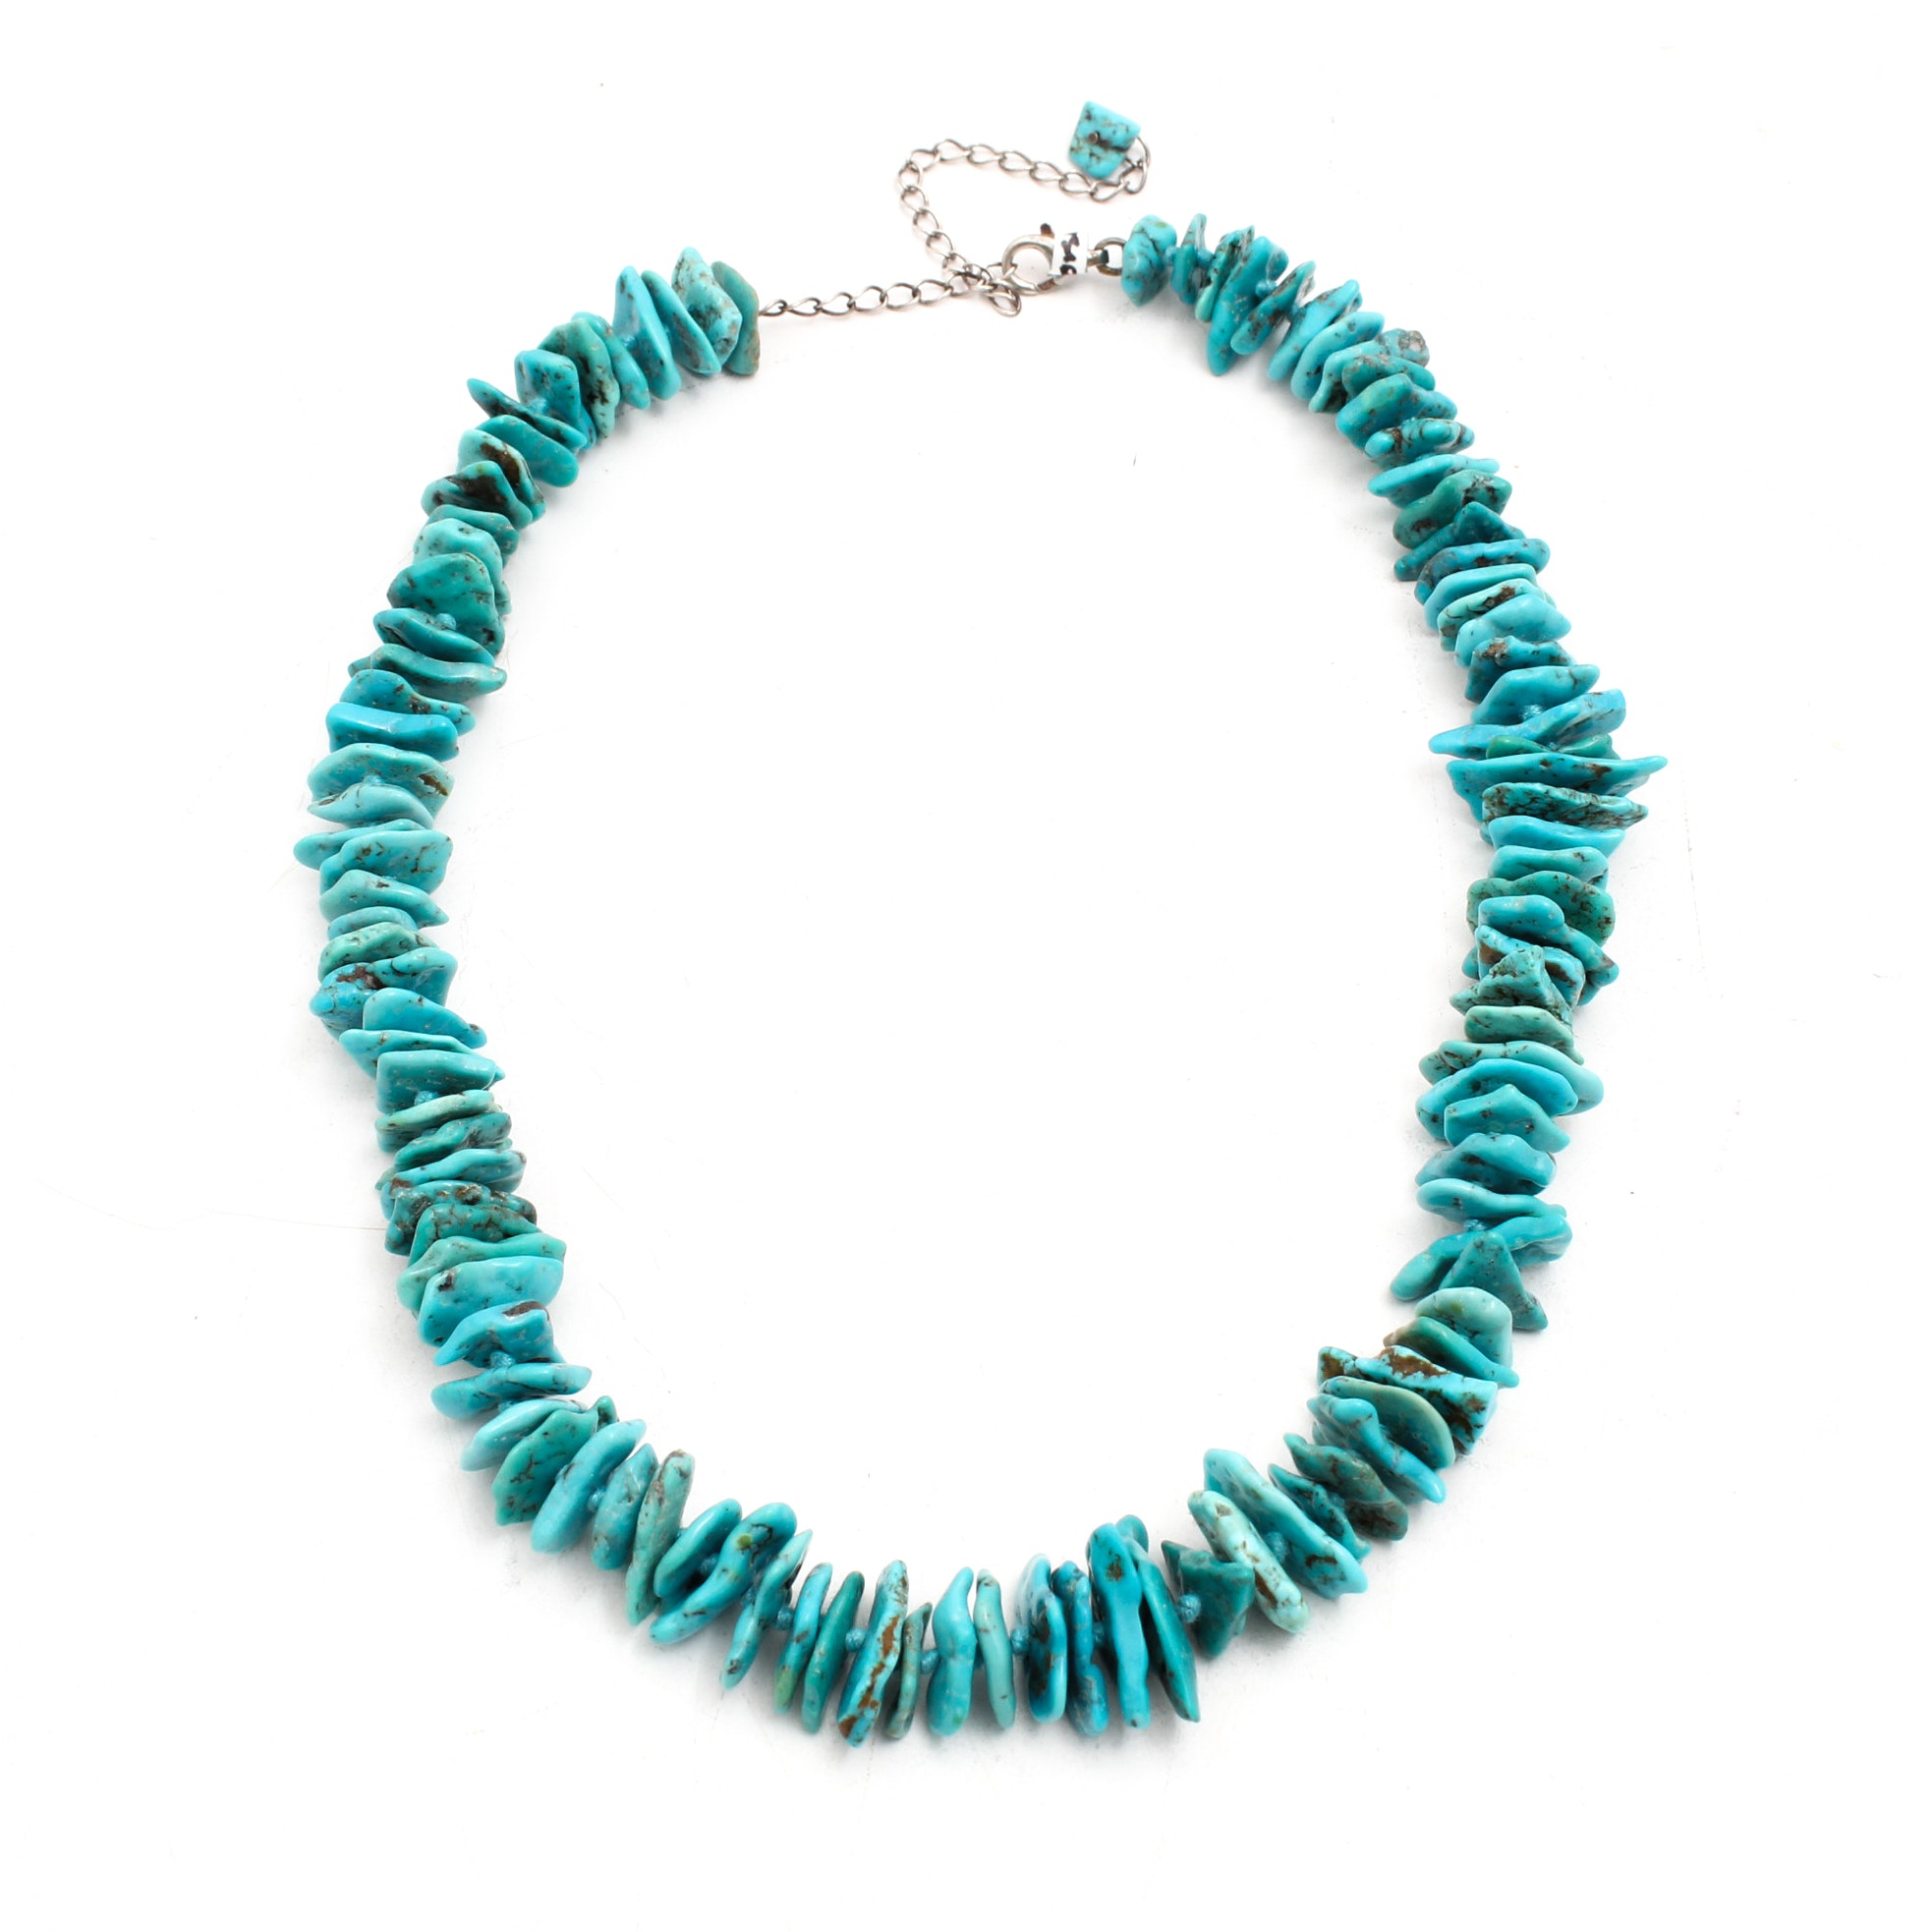 Turquoise Necklace with Sterling Silver Findings